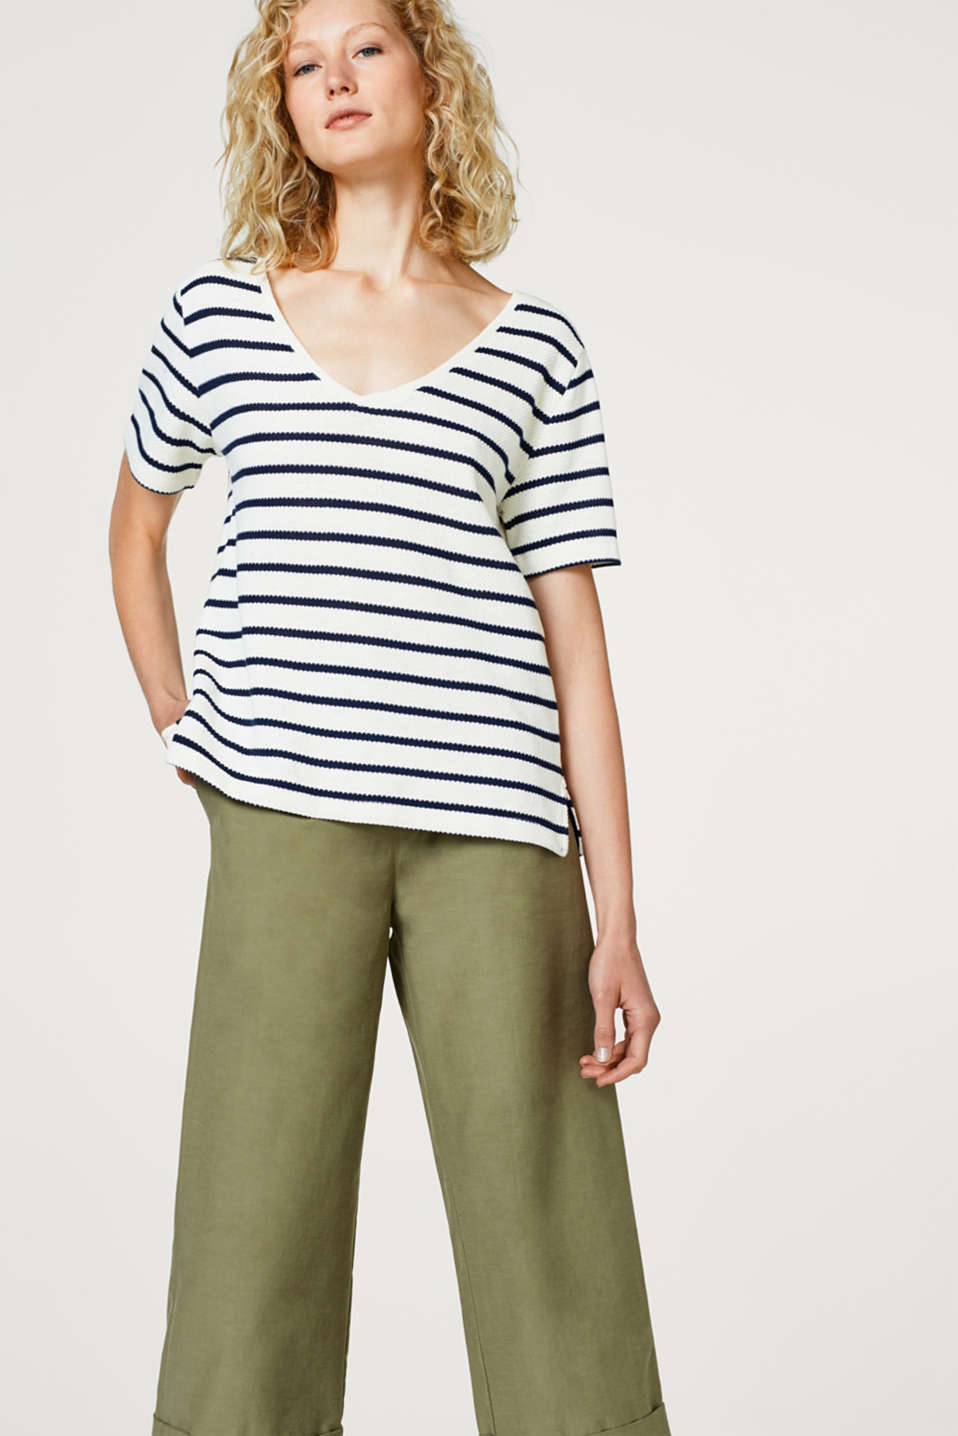 Esprit - Slightly boxy, textured T-shirt